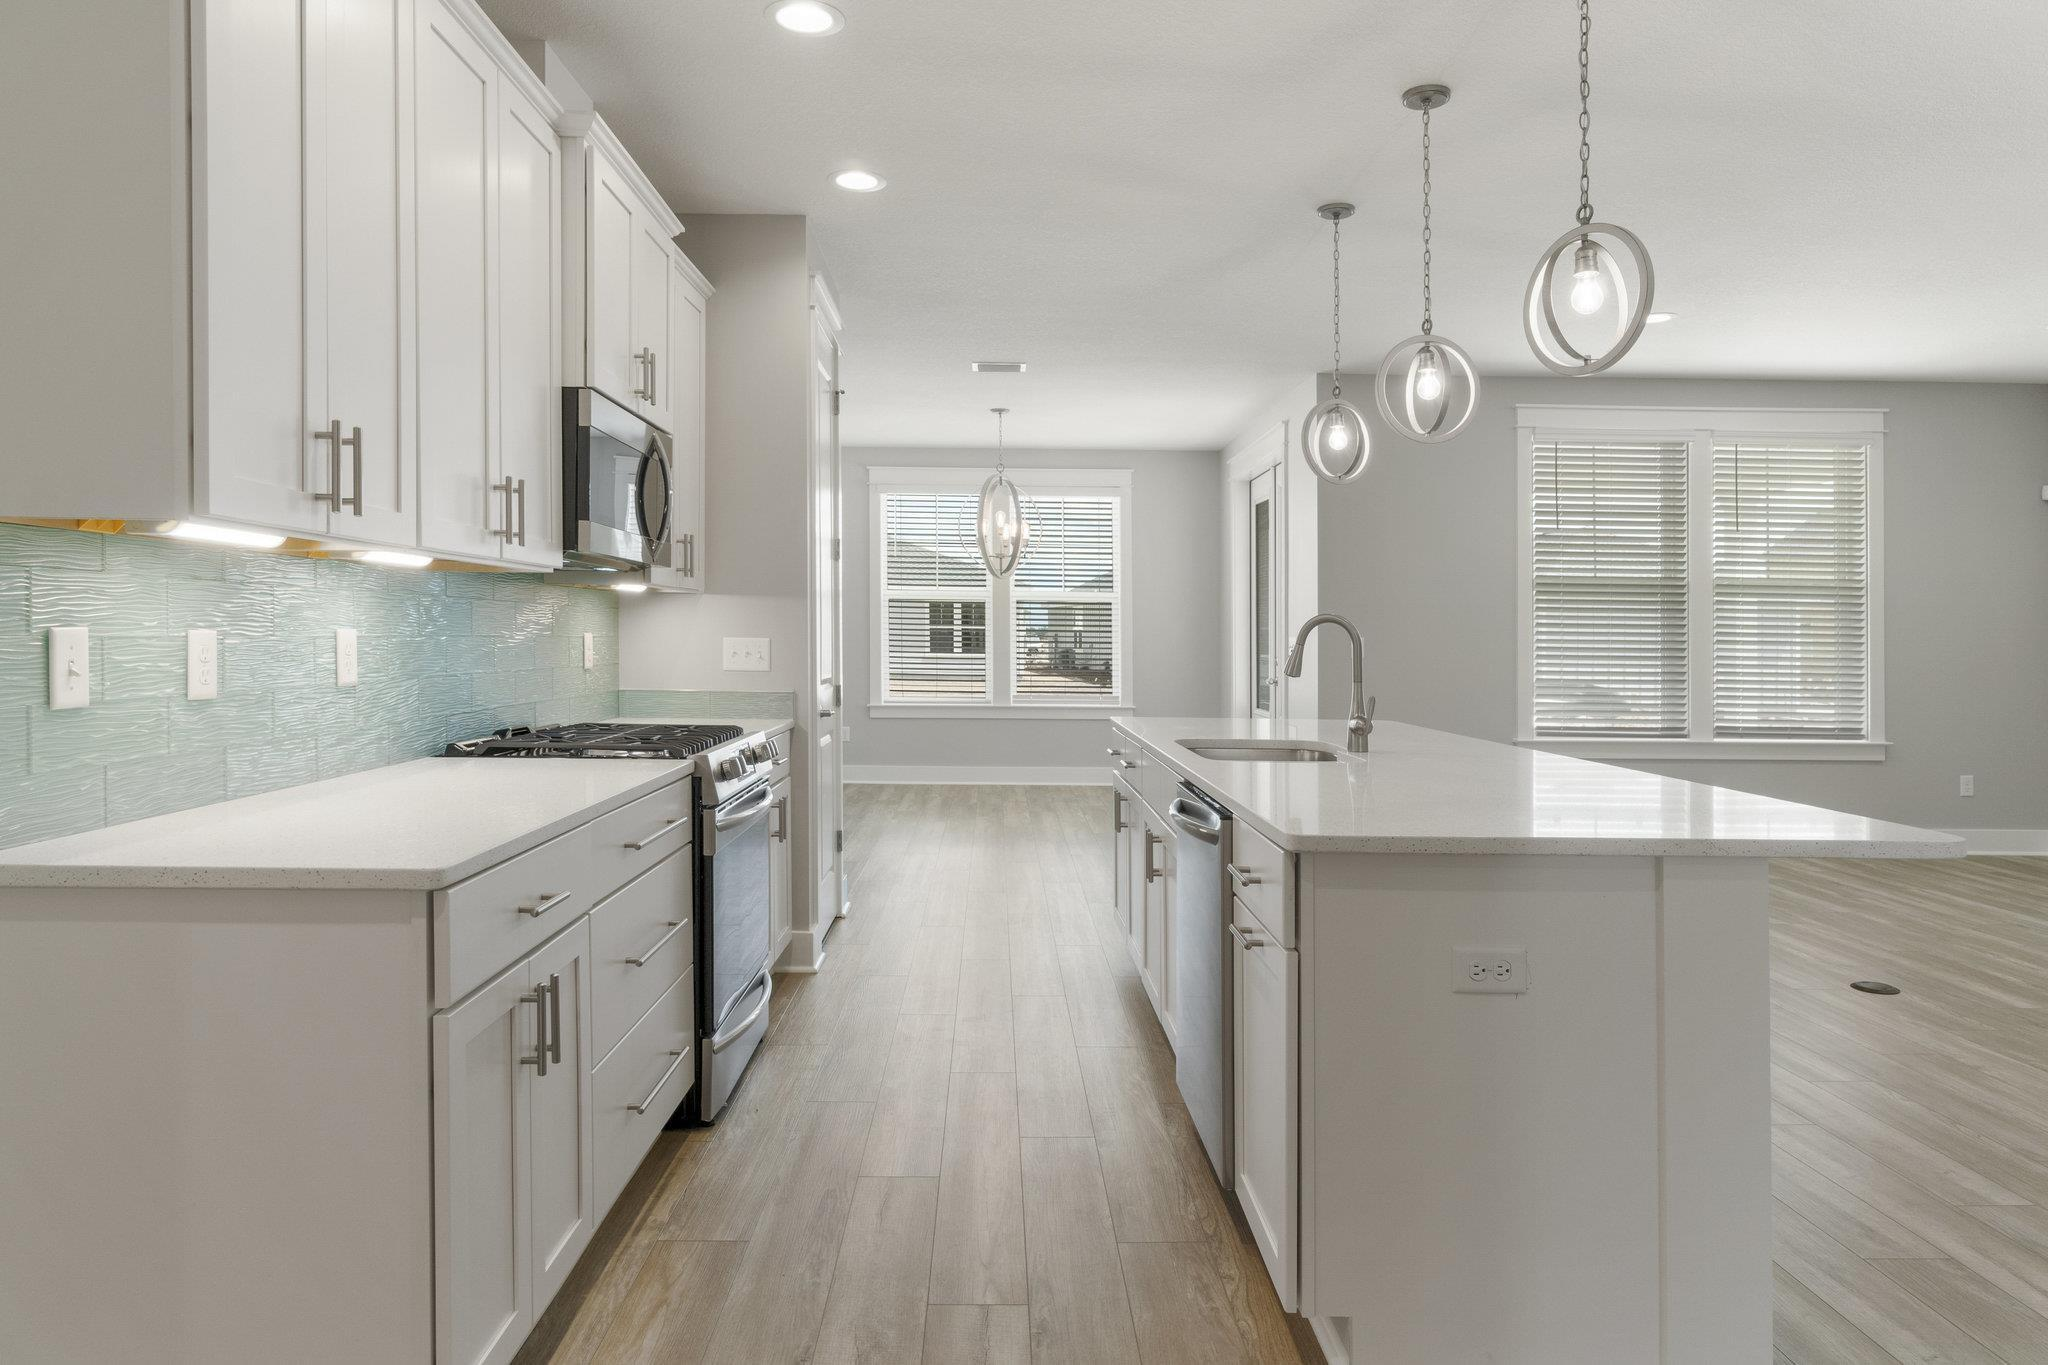 Kitchen featured in the Miramar By Samuel Taylor Homes in Panama City, FL